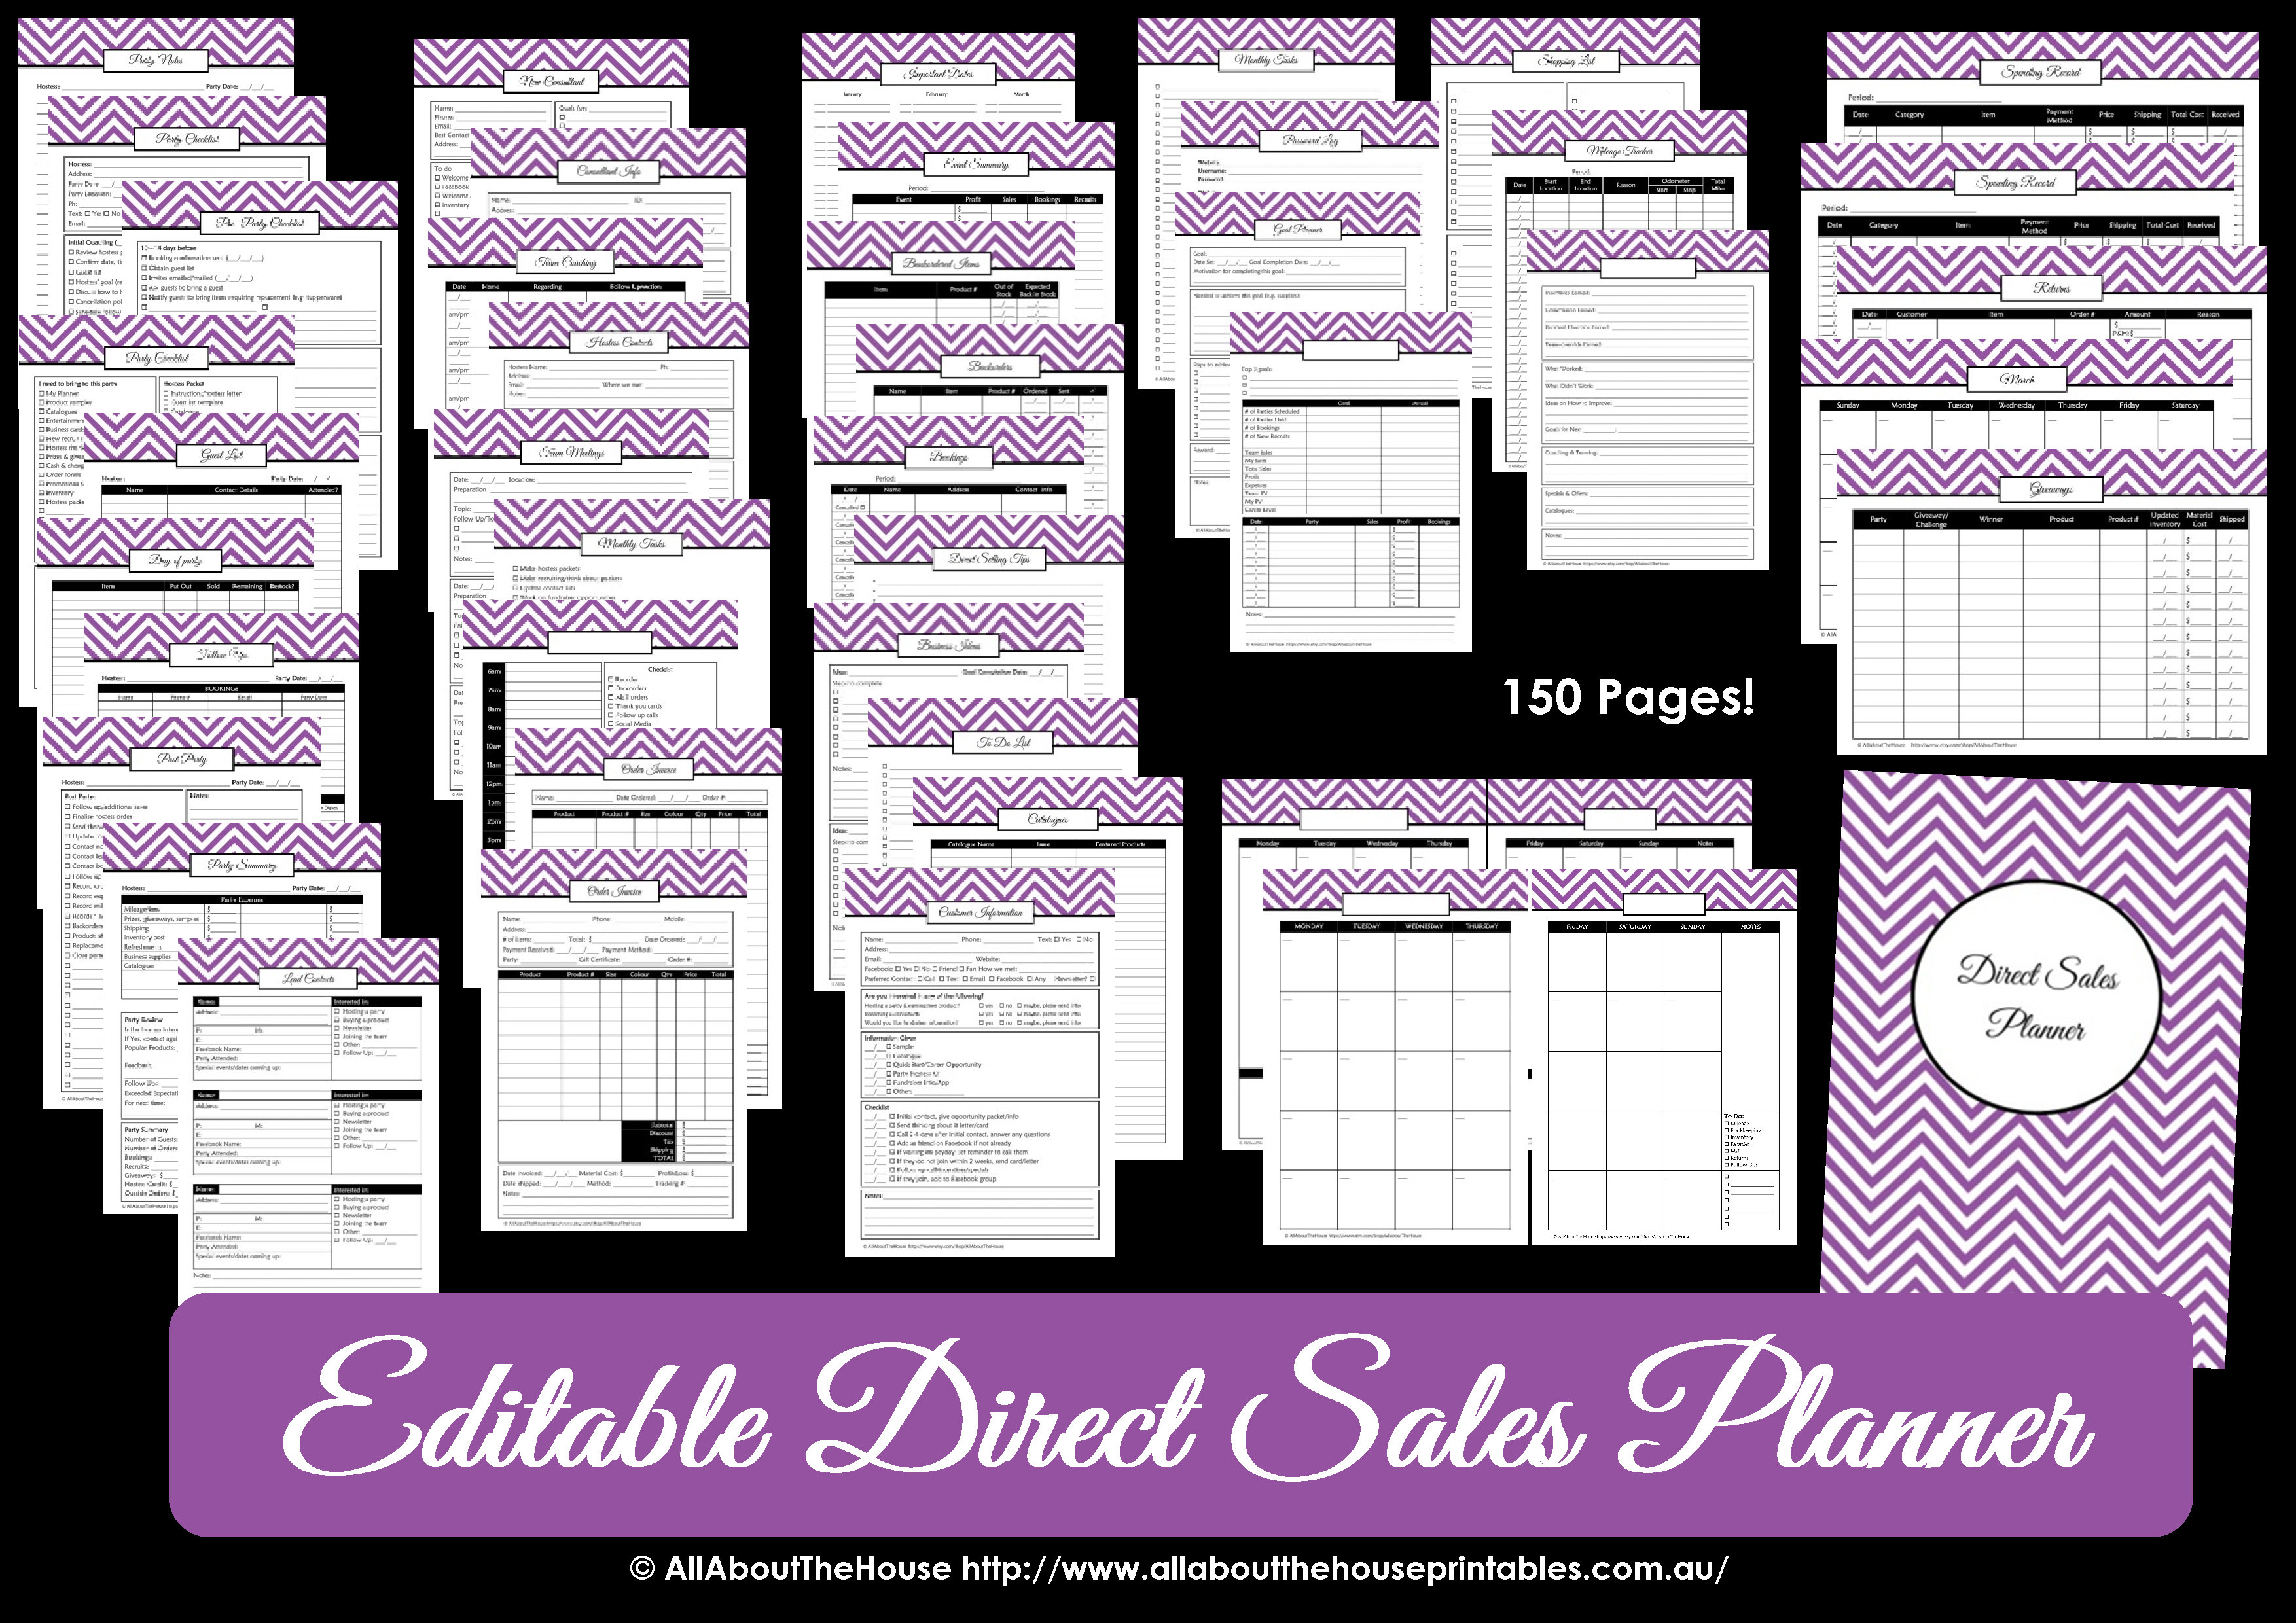 Printable Direct Sales Planner - Editable - All About Planners - Free Printable Scentsy Order Forms